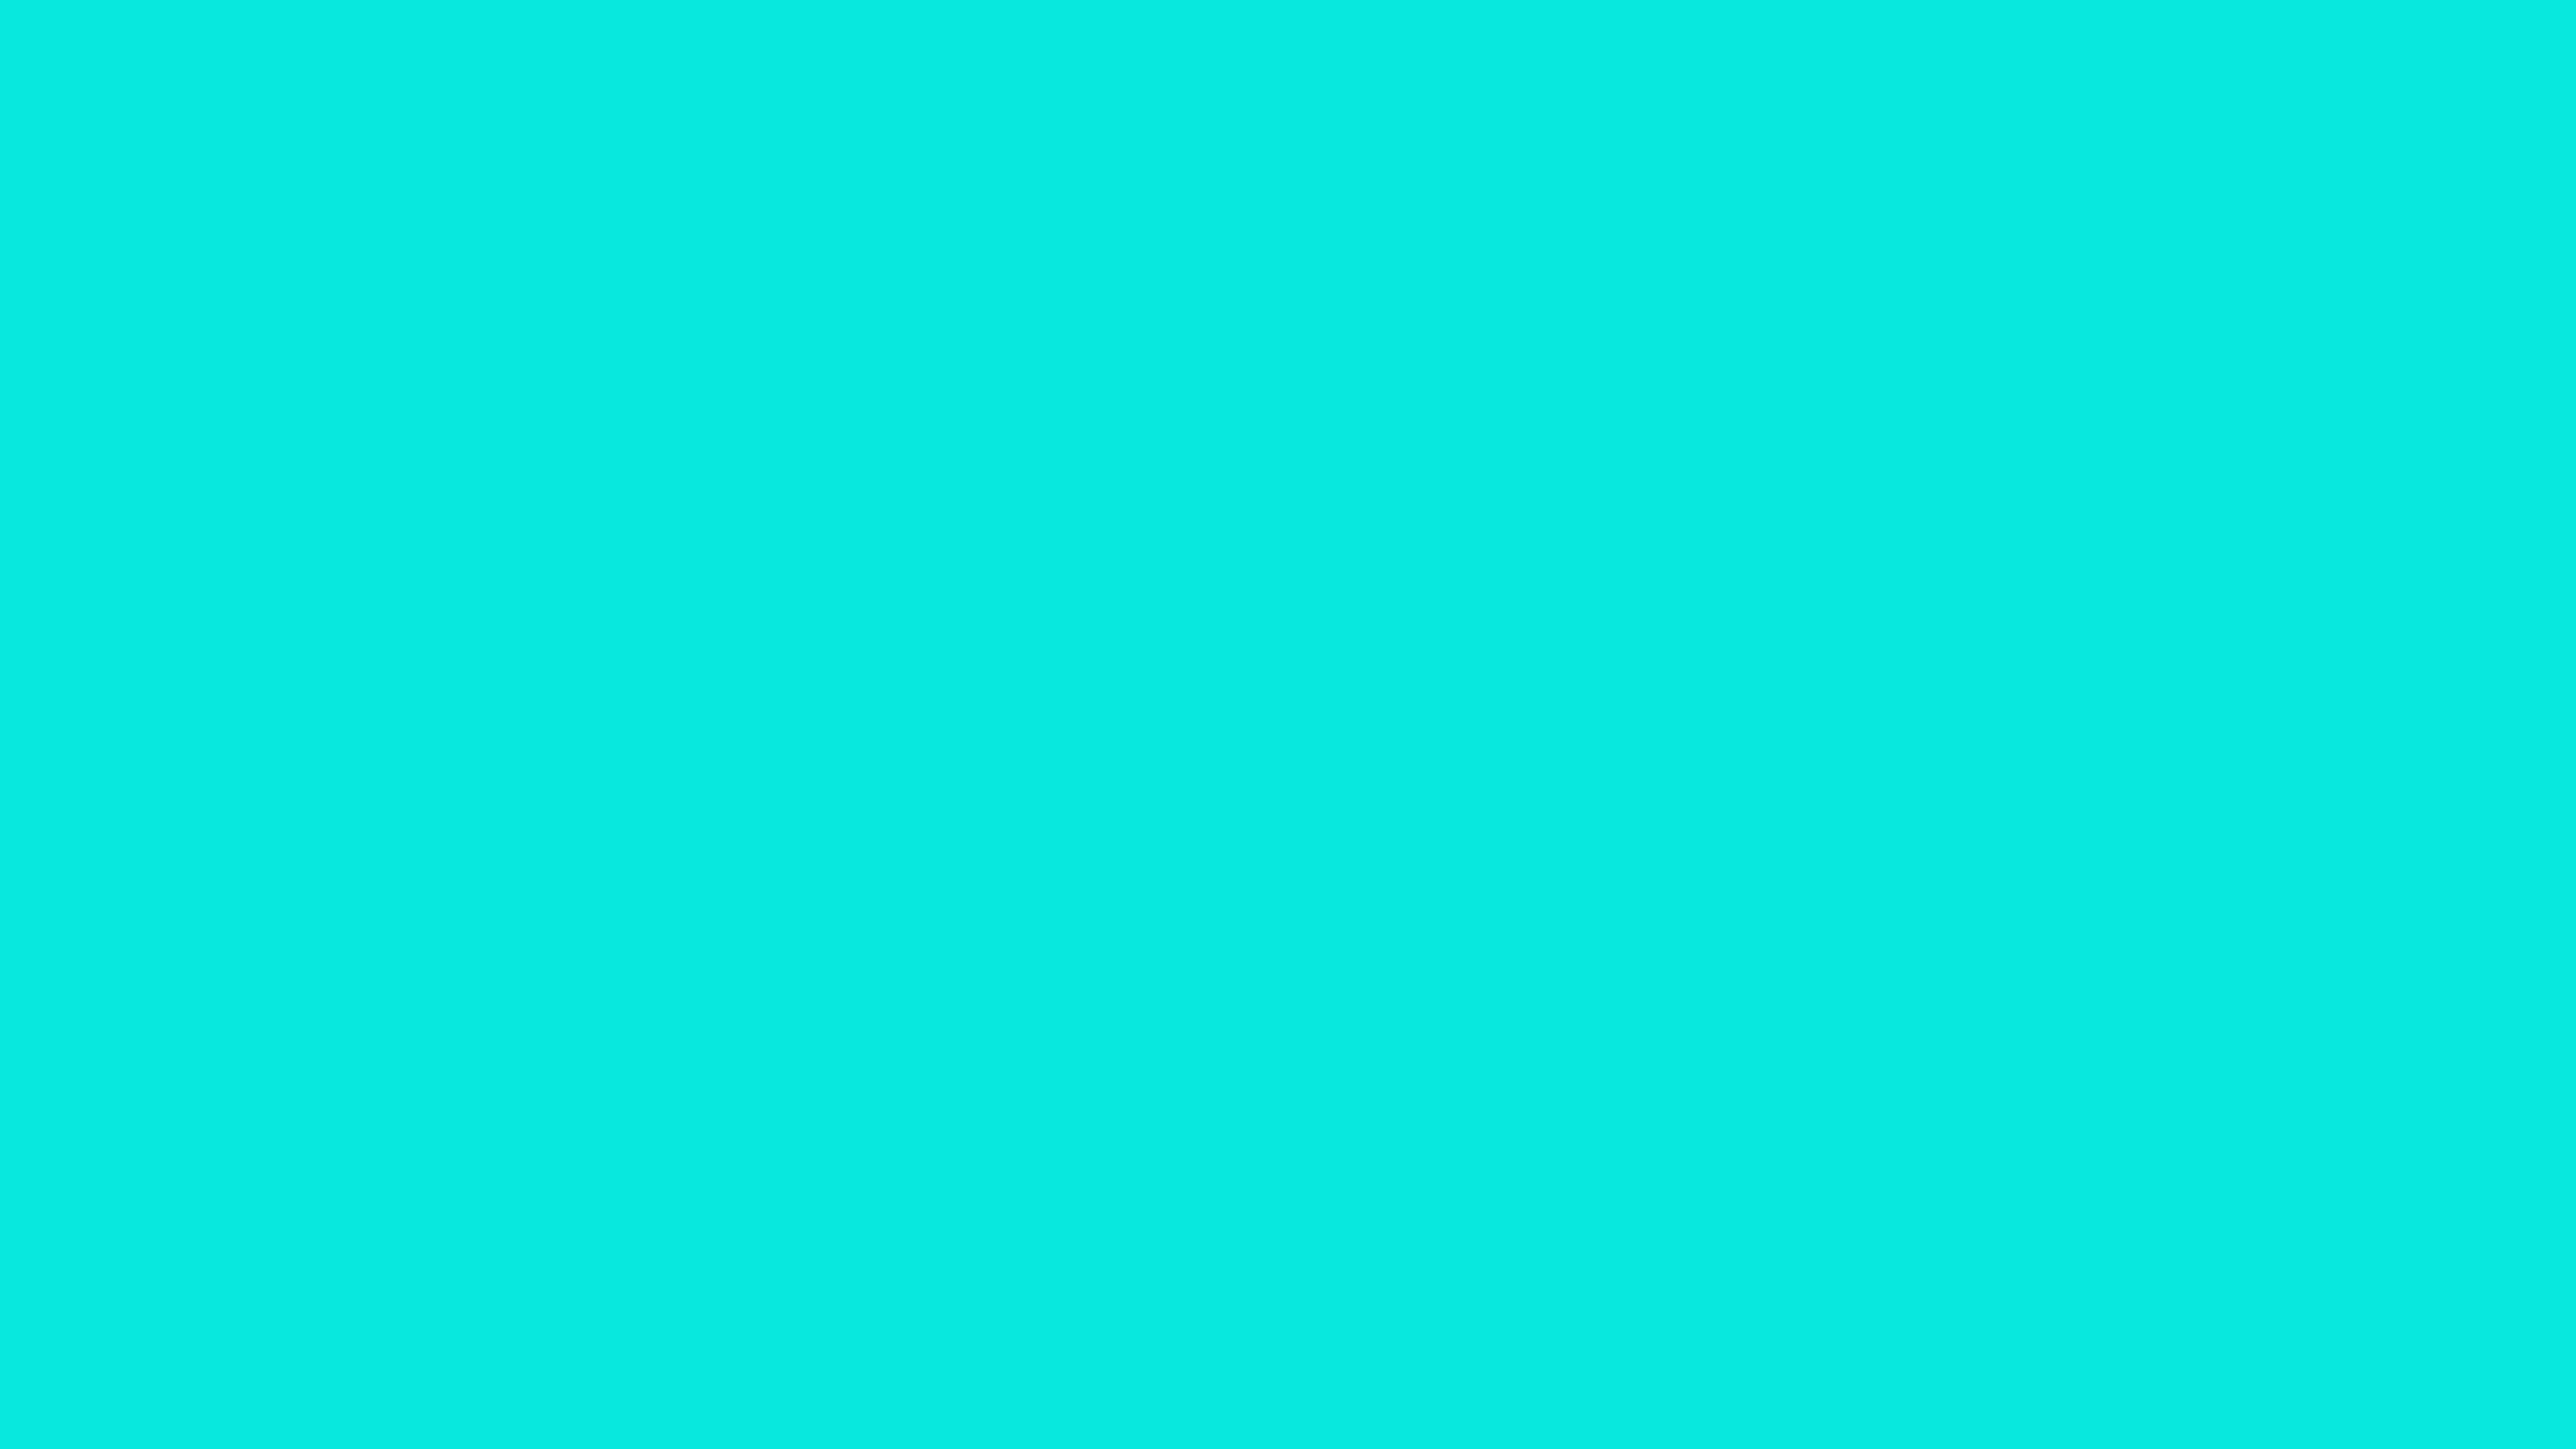 7680x4320 Bright Turquoise Solid Color Background